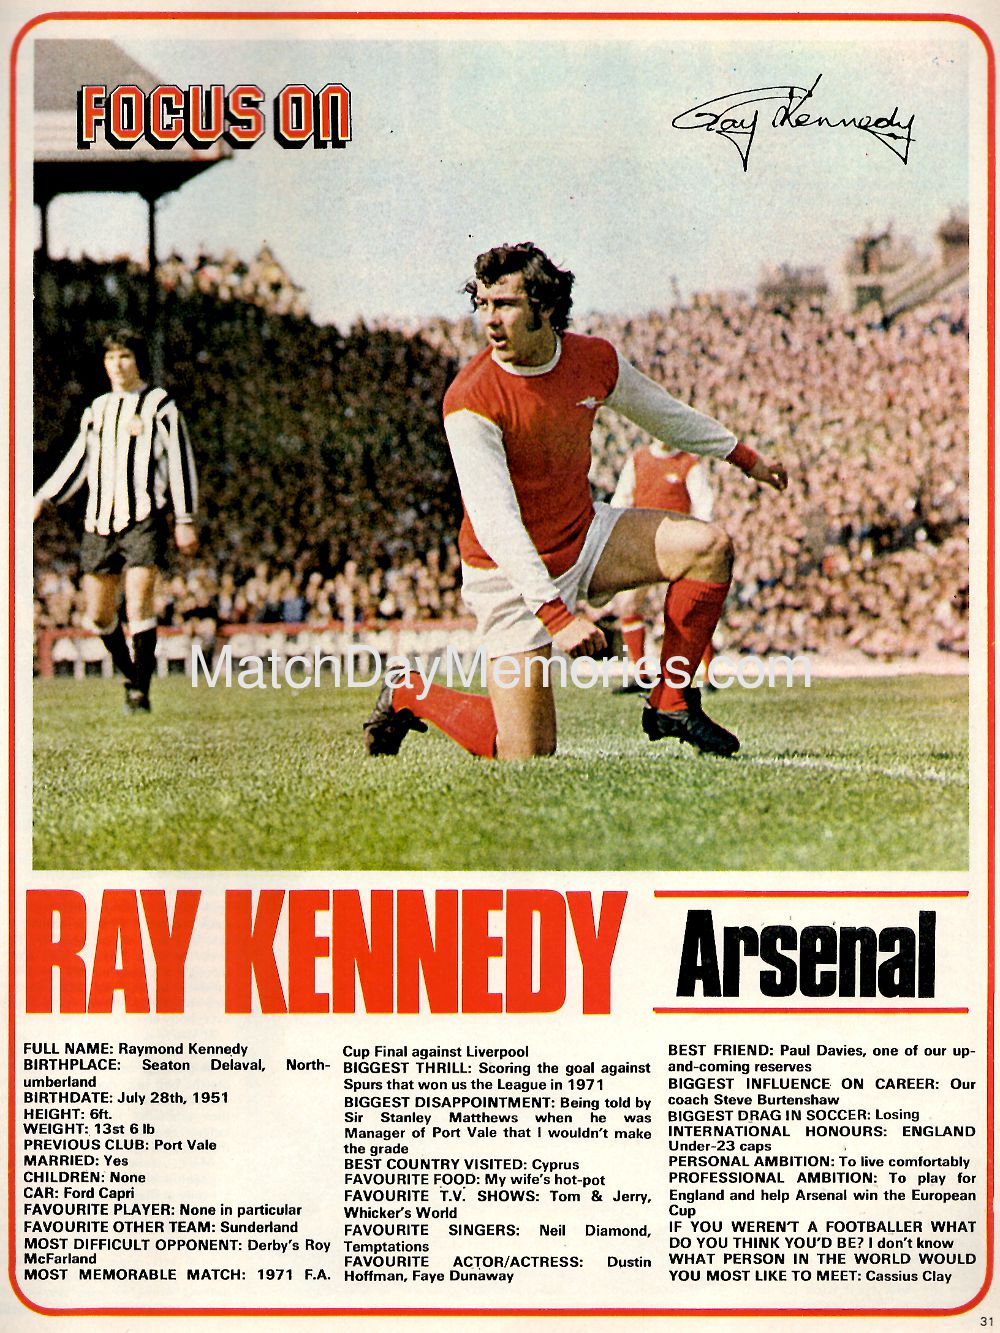 Focus on Arsenal's Ray Kennedy